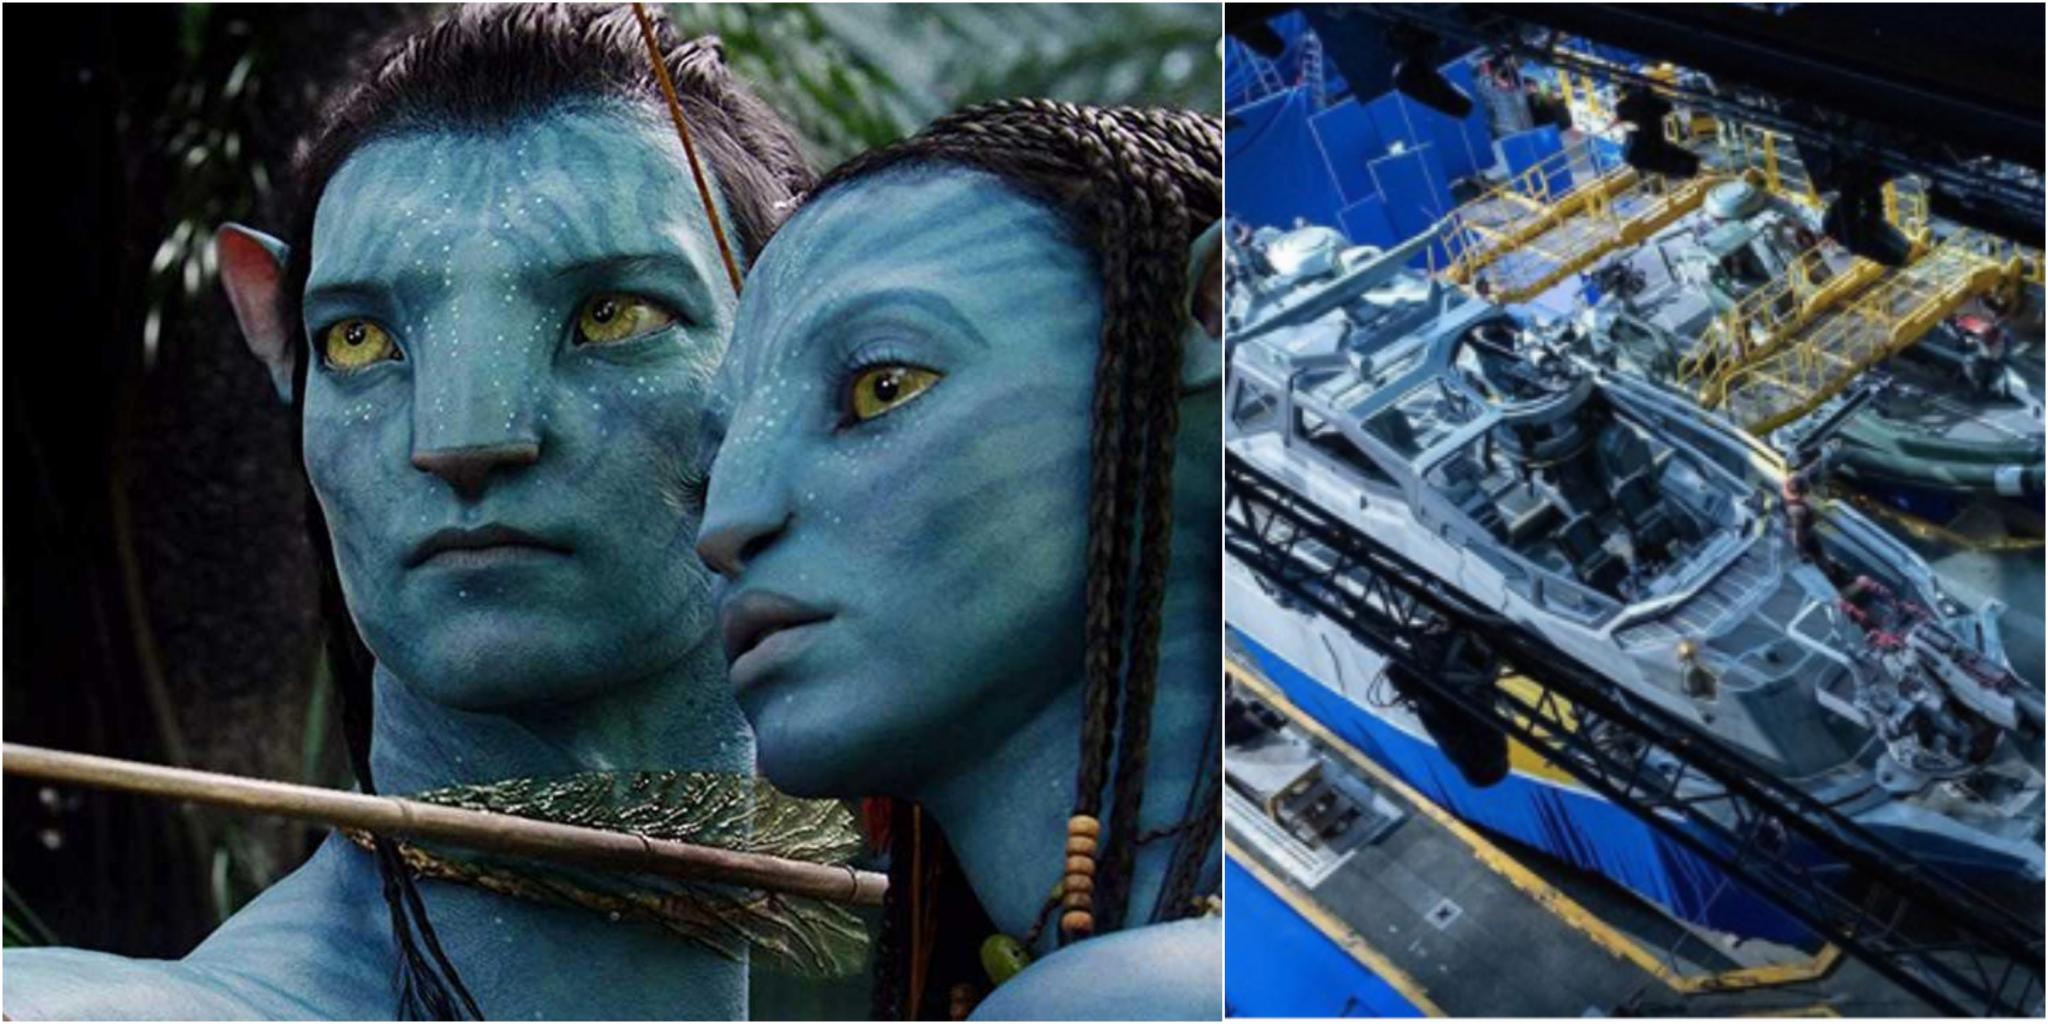 Avatar 2 To Resume Production In New Zealand Next Week; Producer Jon Landau Confirms With a Set Photo On Instagram